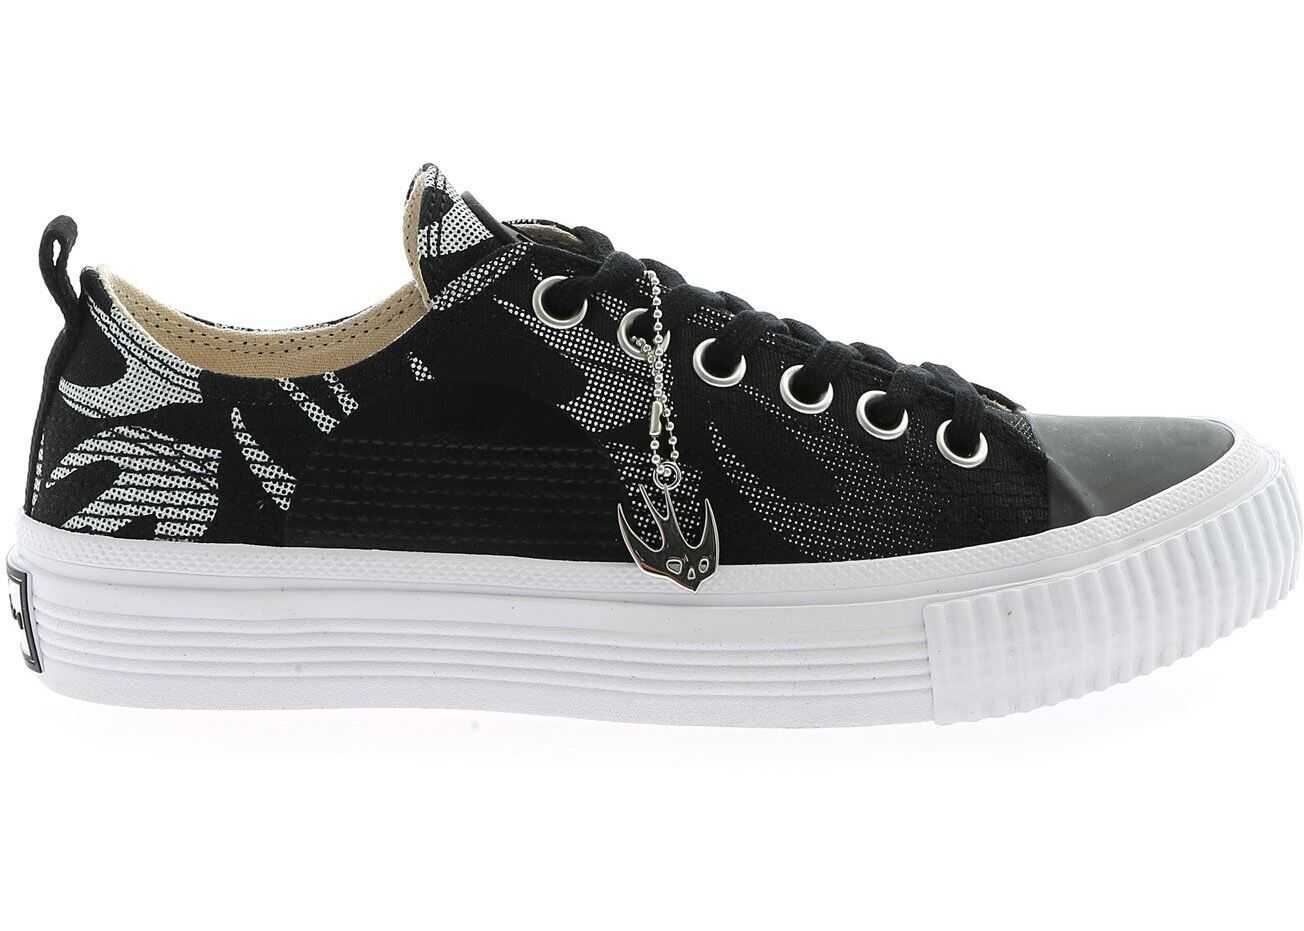 MCQ Alexander McQueen Swallow Sneakers In Black And White Black